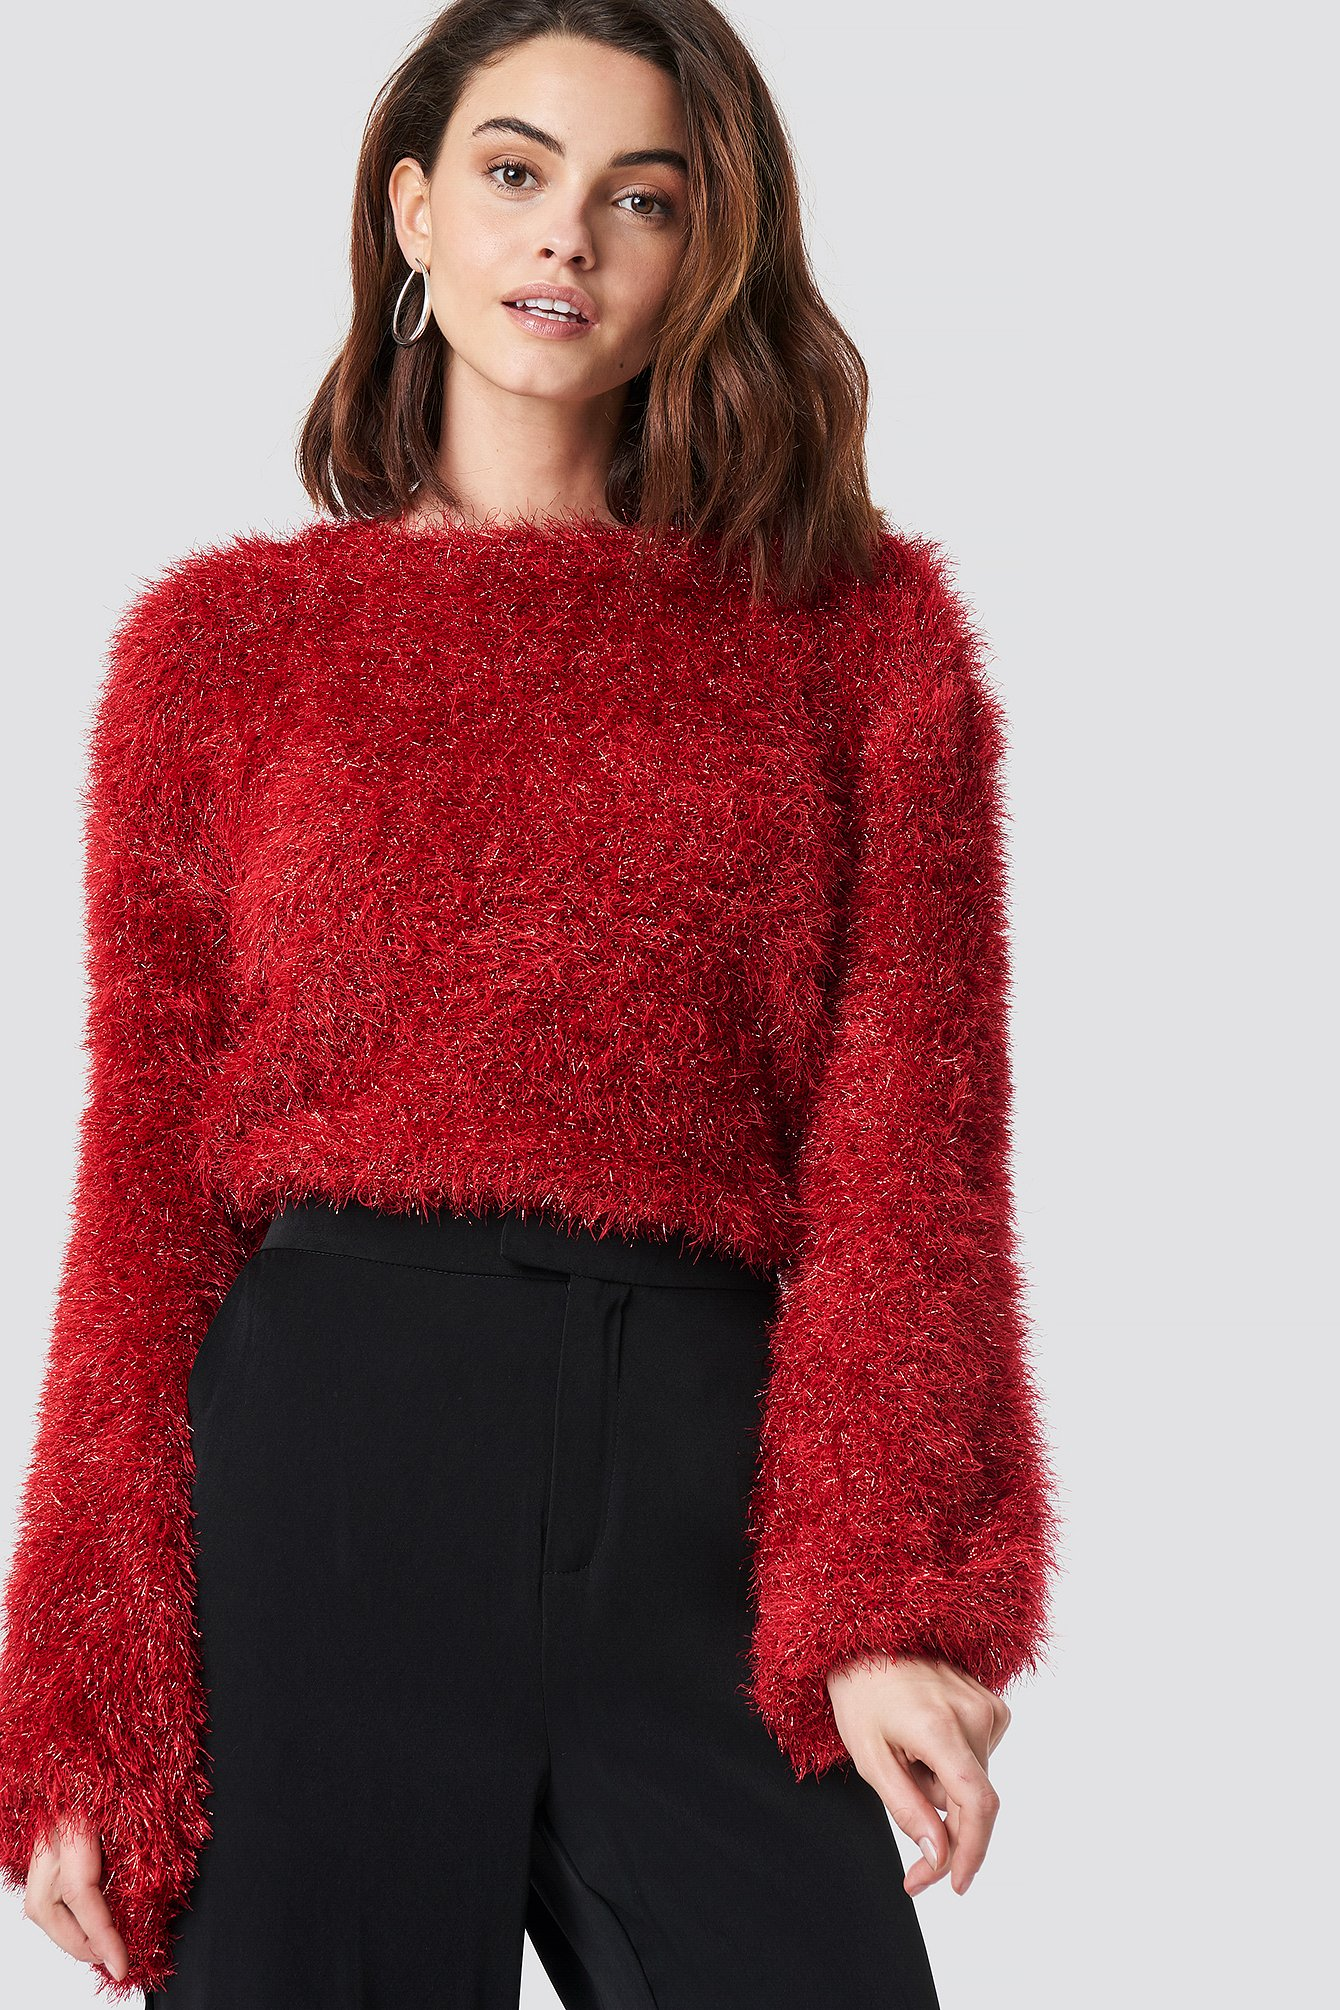 na-kd party -  Glittery Balloon Sleeve Sweater - Red